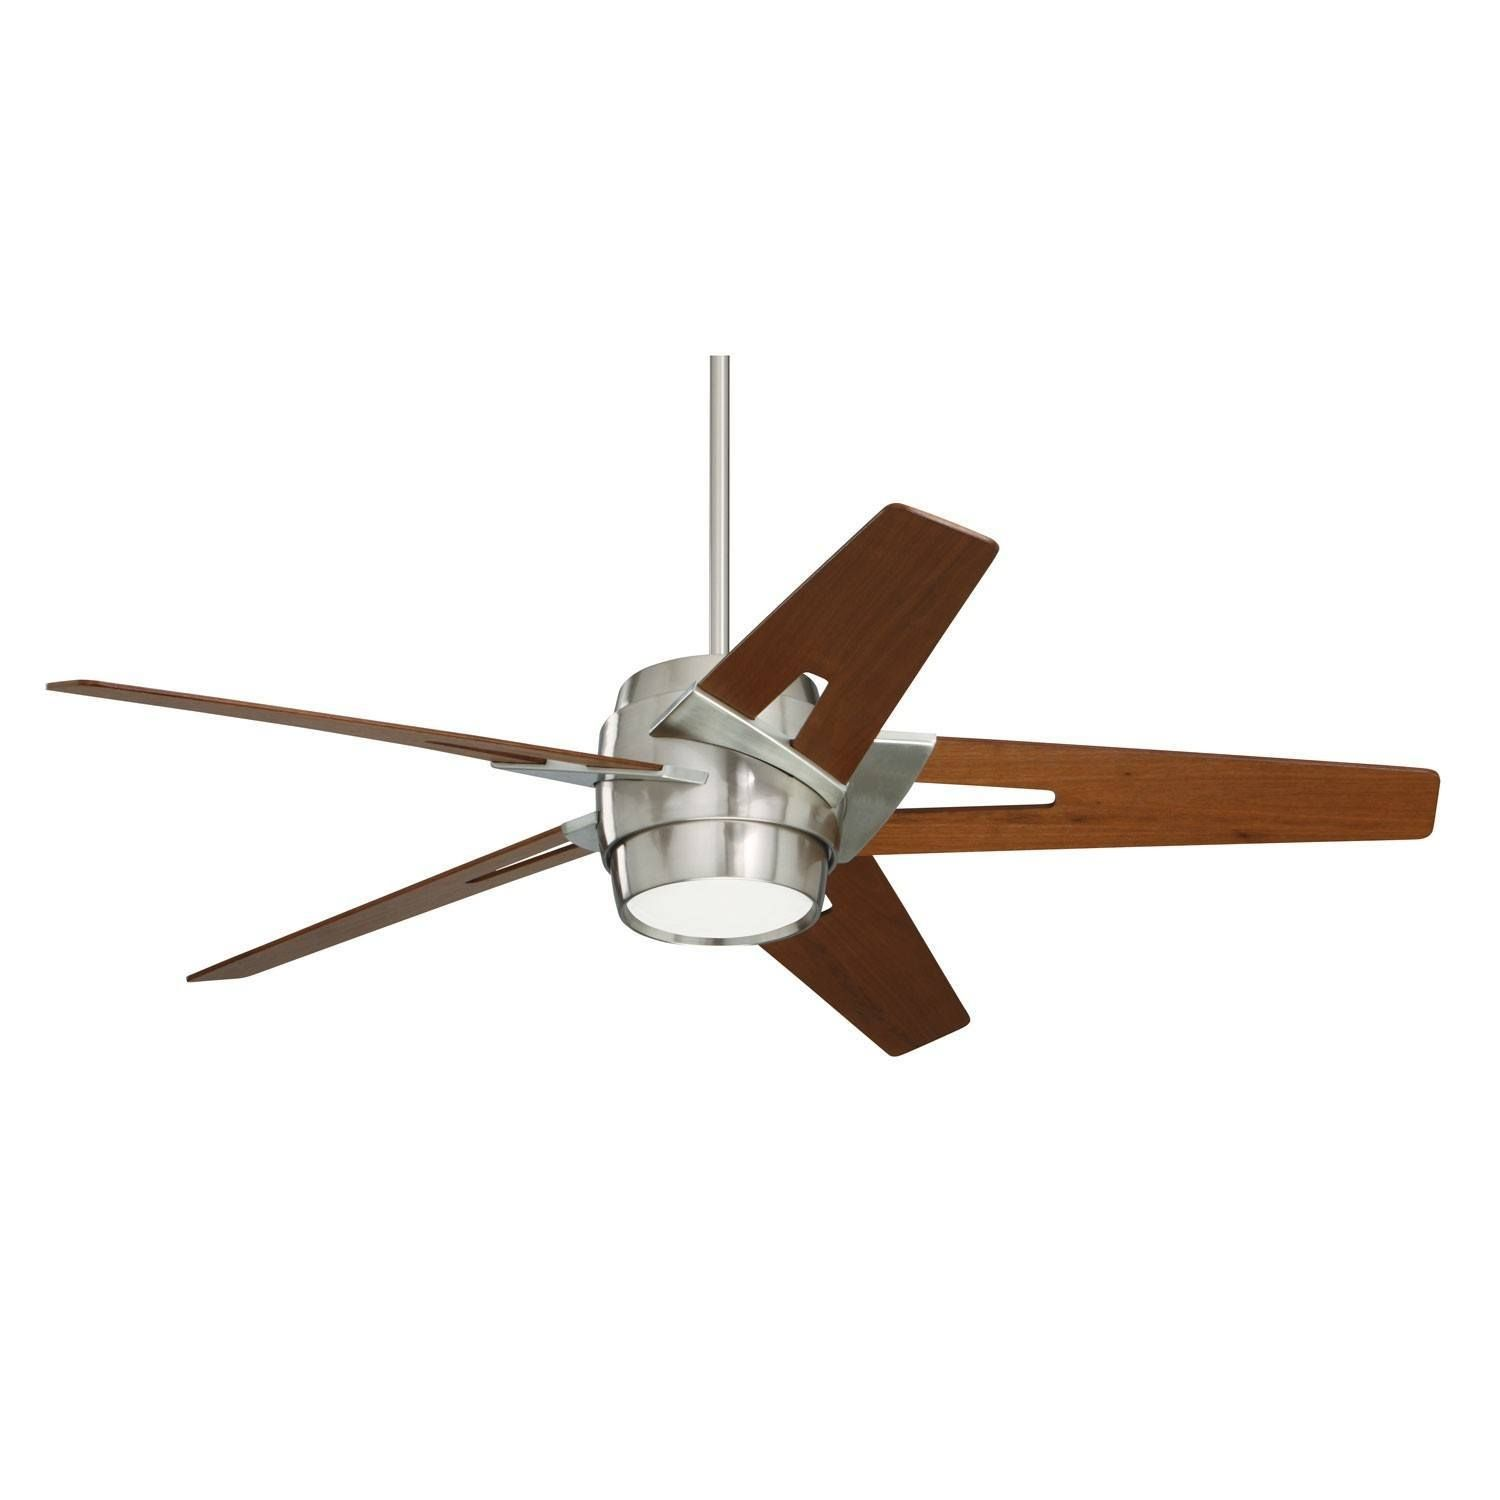 Best Rated Ceiling Fans o